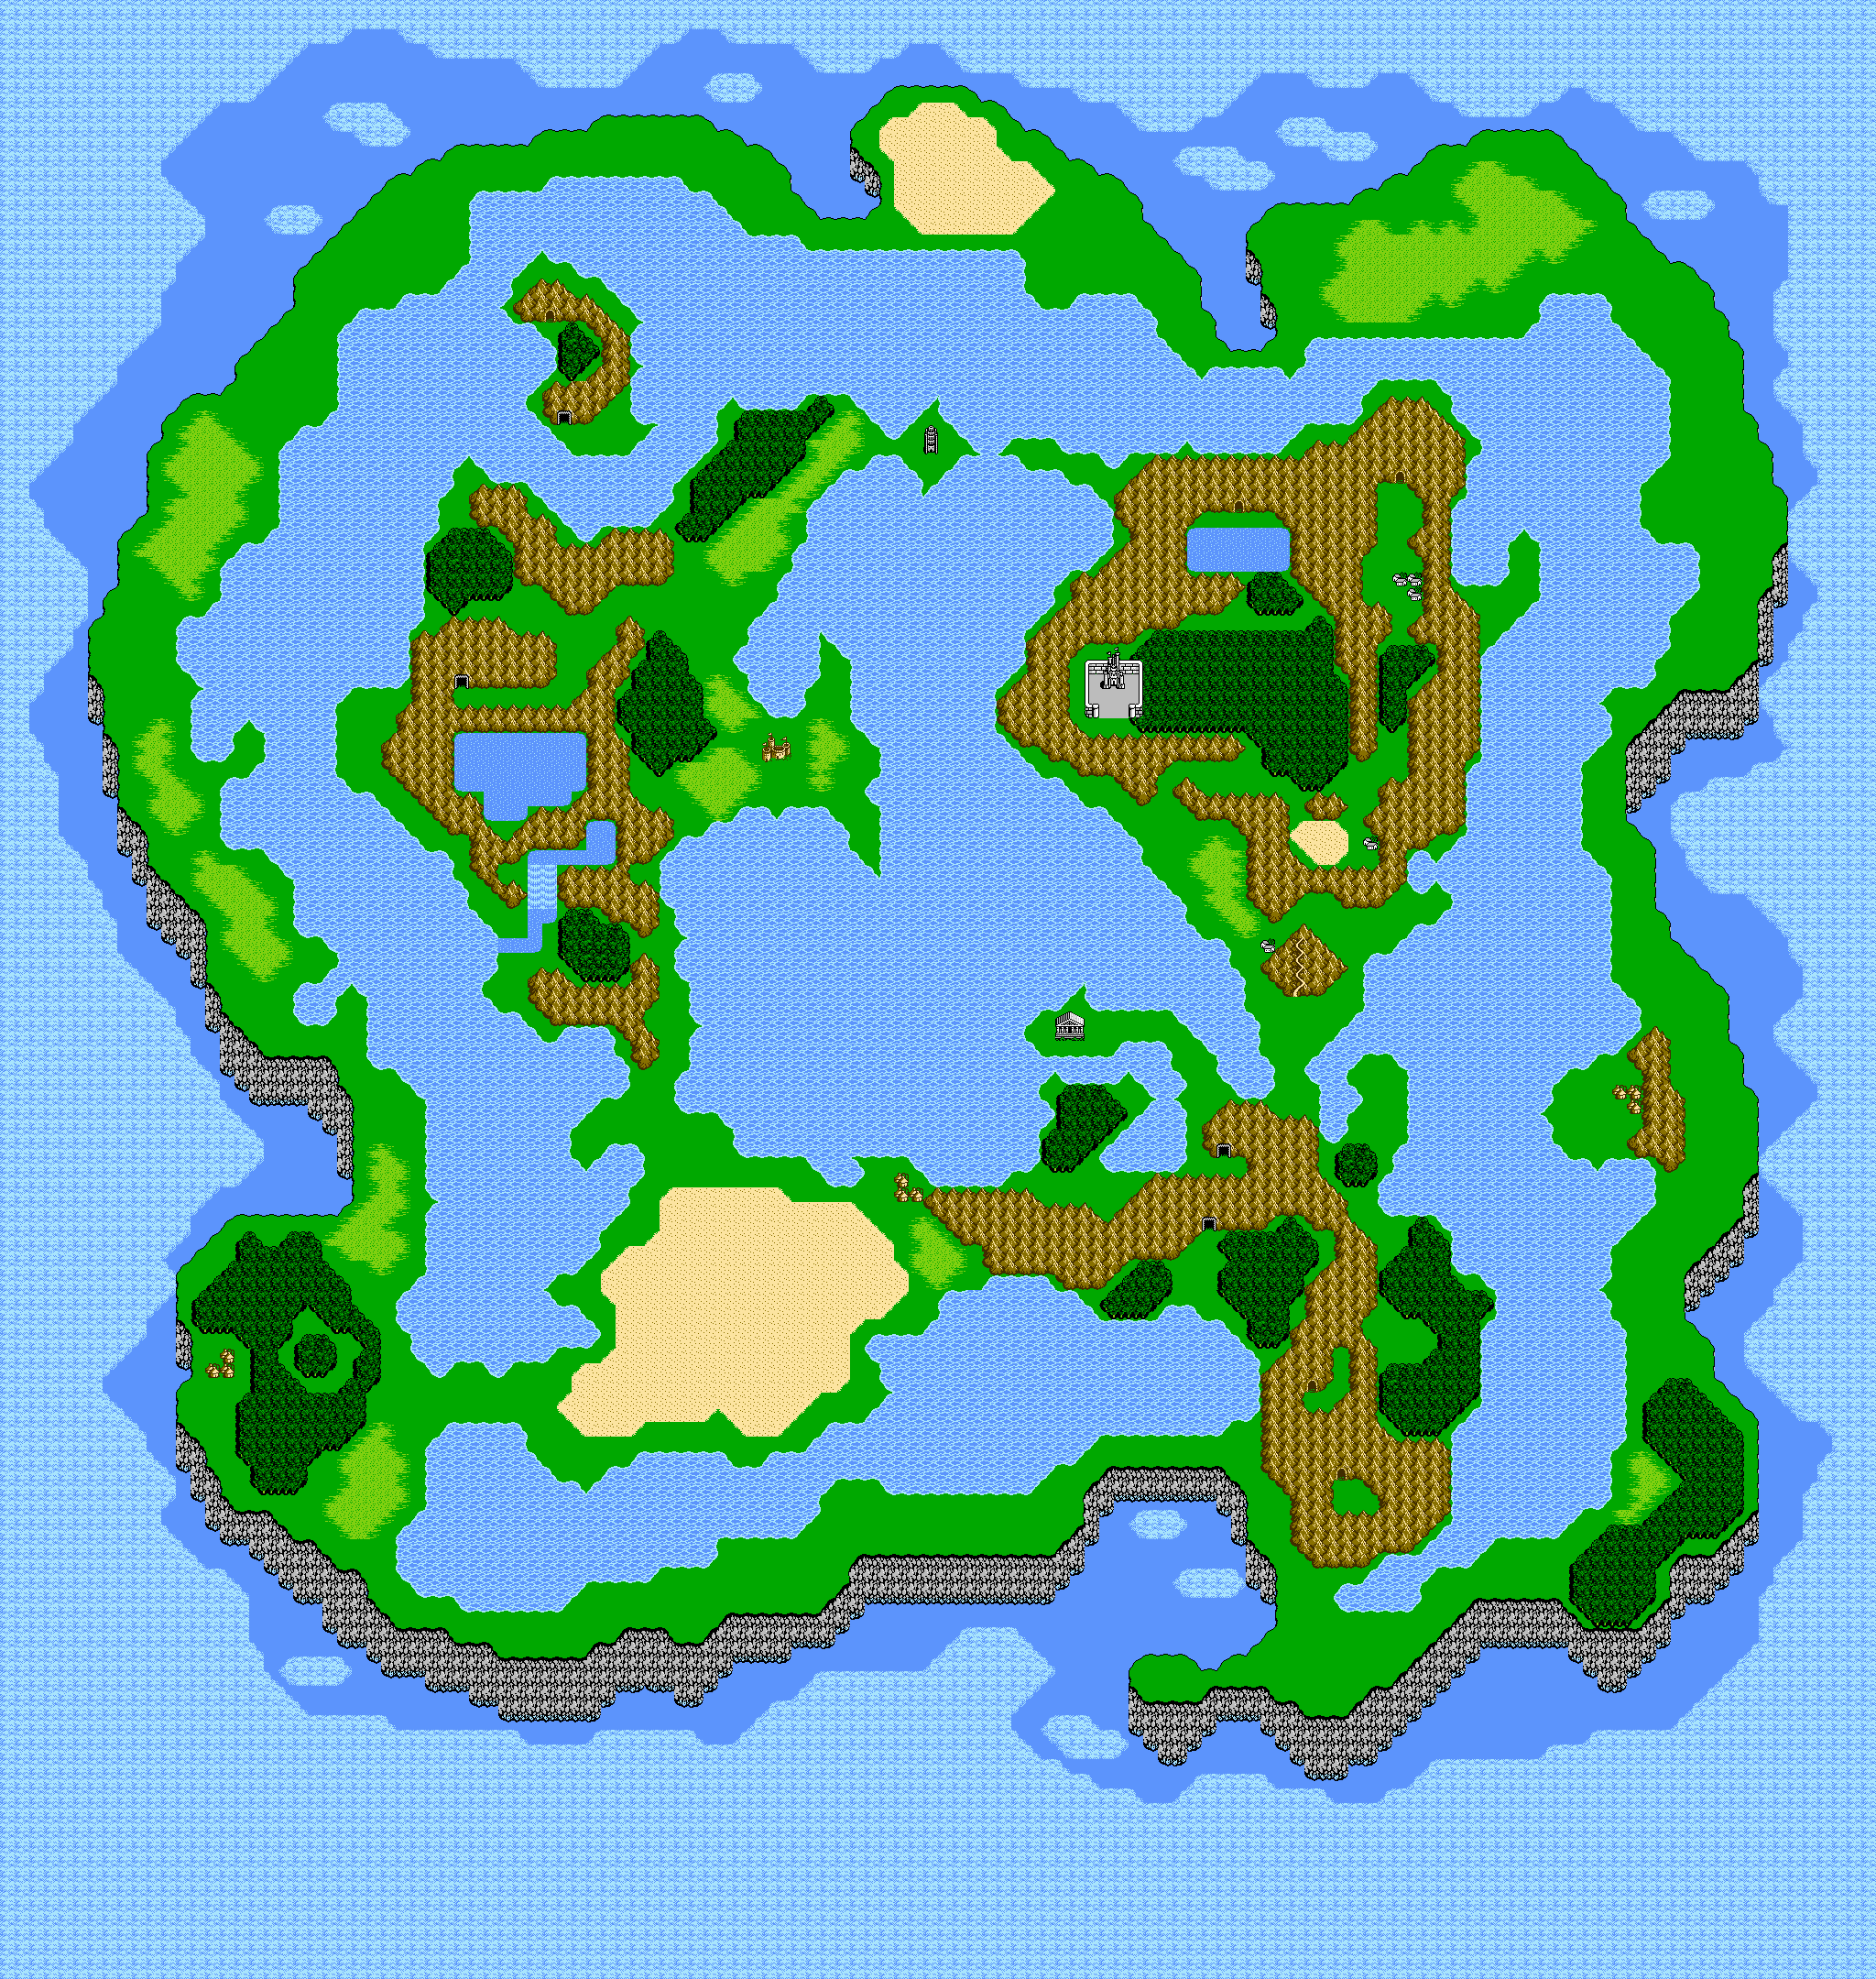 List of final fantasy iii locations final fantasy wiki fandom list of final fantasy iii locations final fantasy wiki fandom powered by wikia gumiabroncs Choice Image